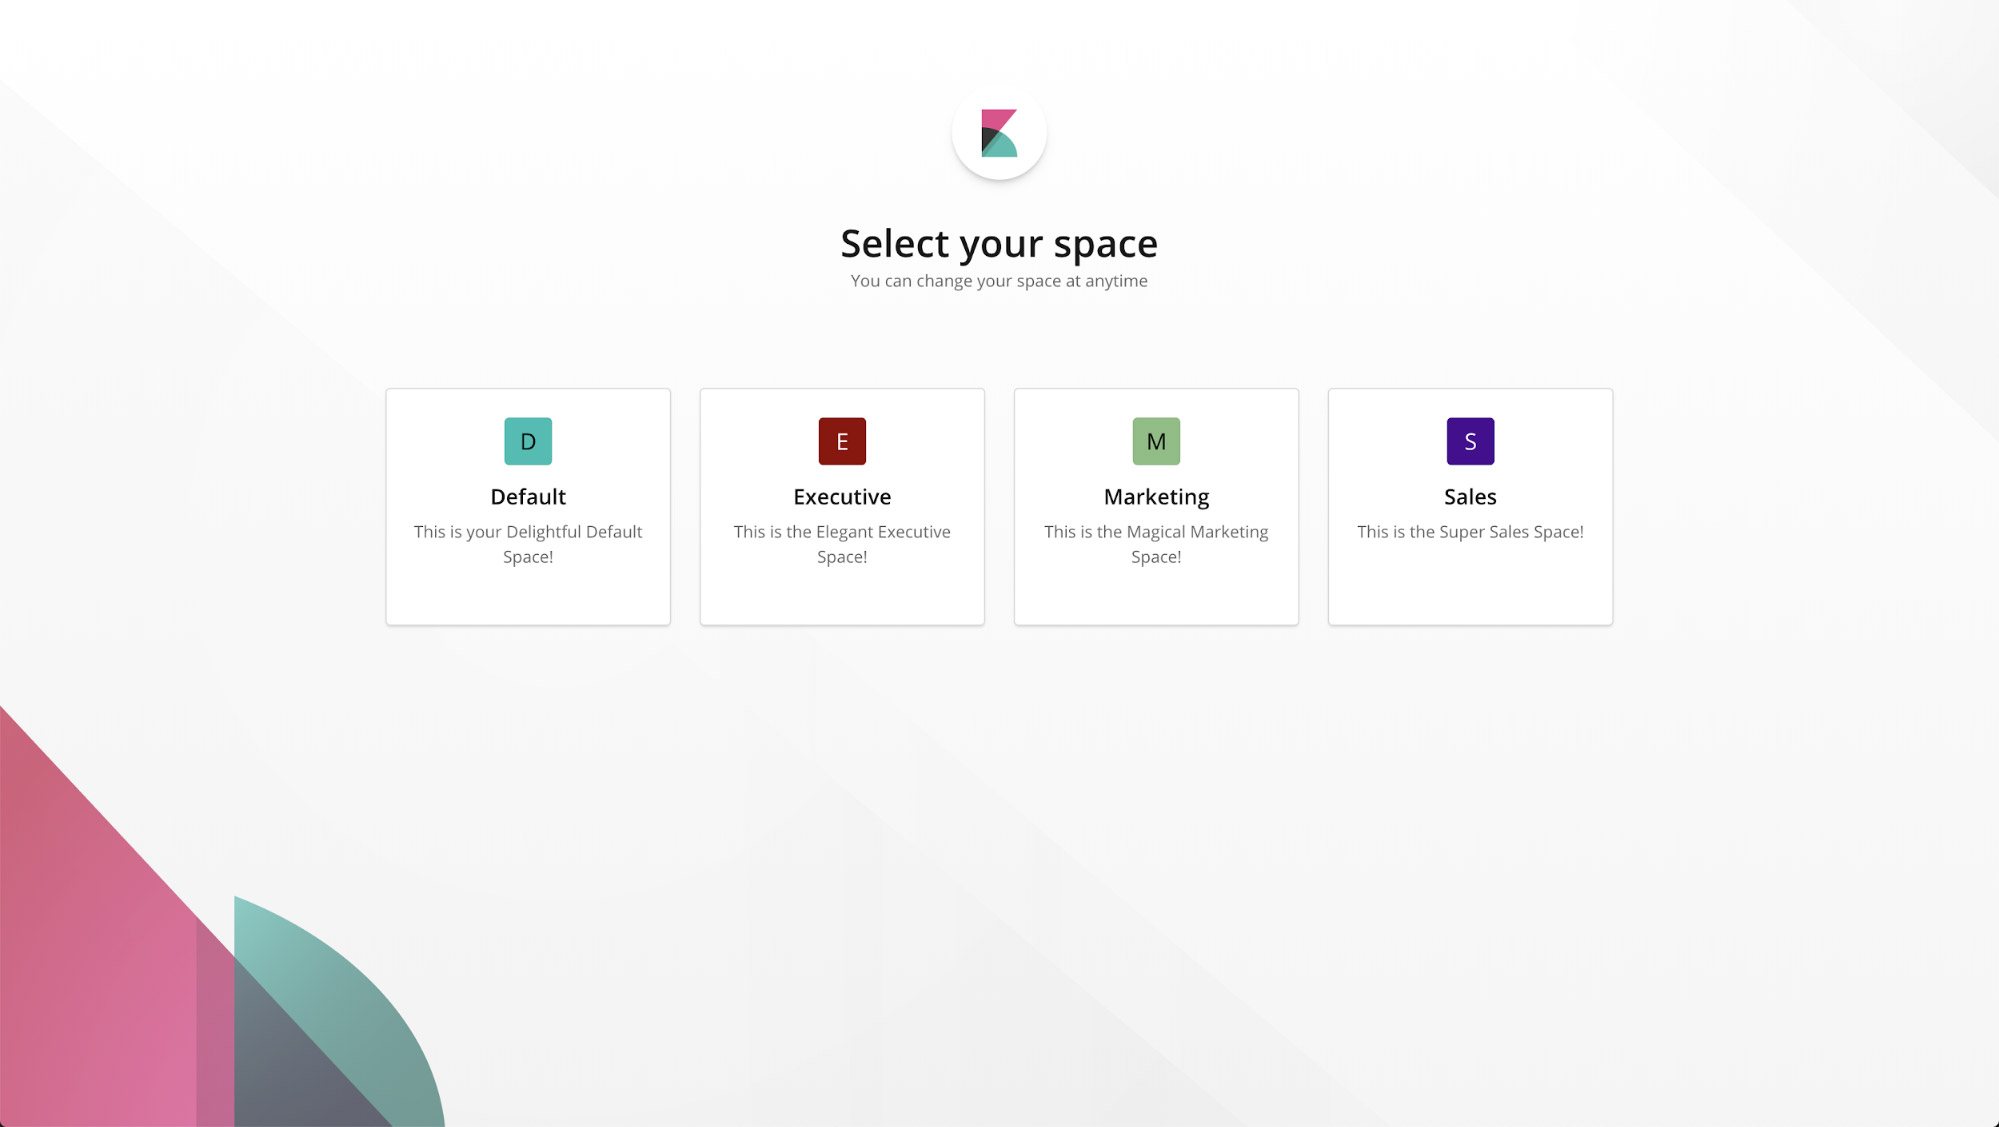 screenshot-kibana-space-selector-feature-page.jpg